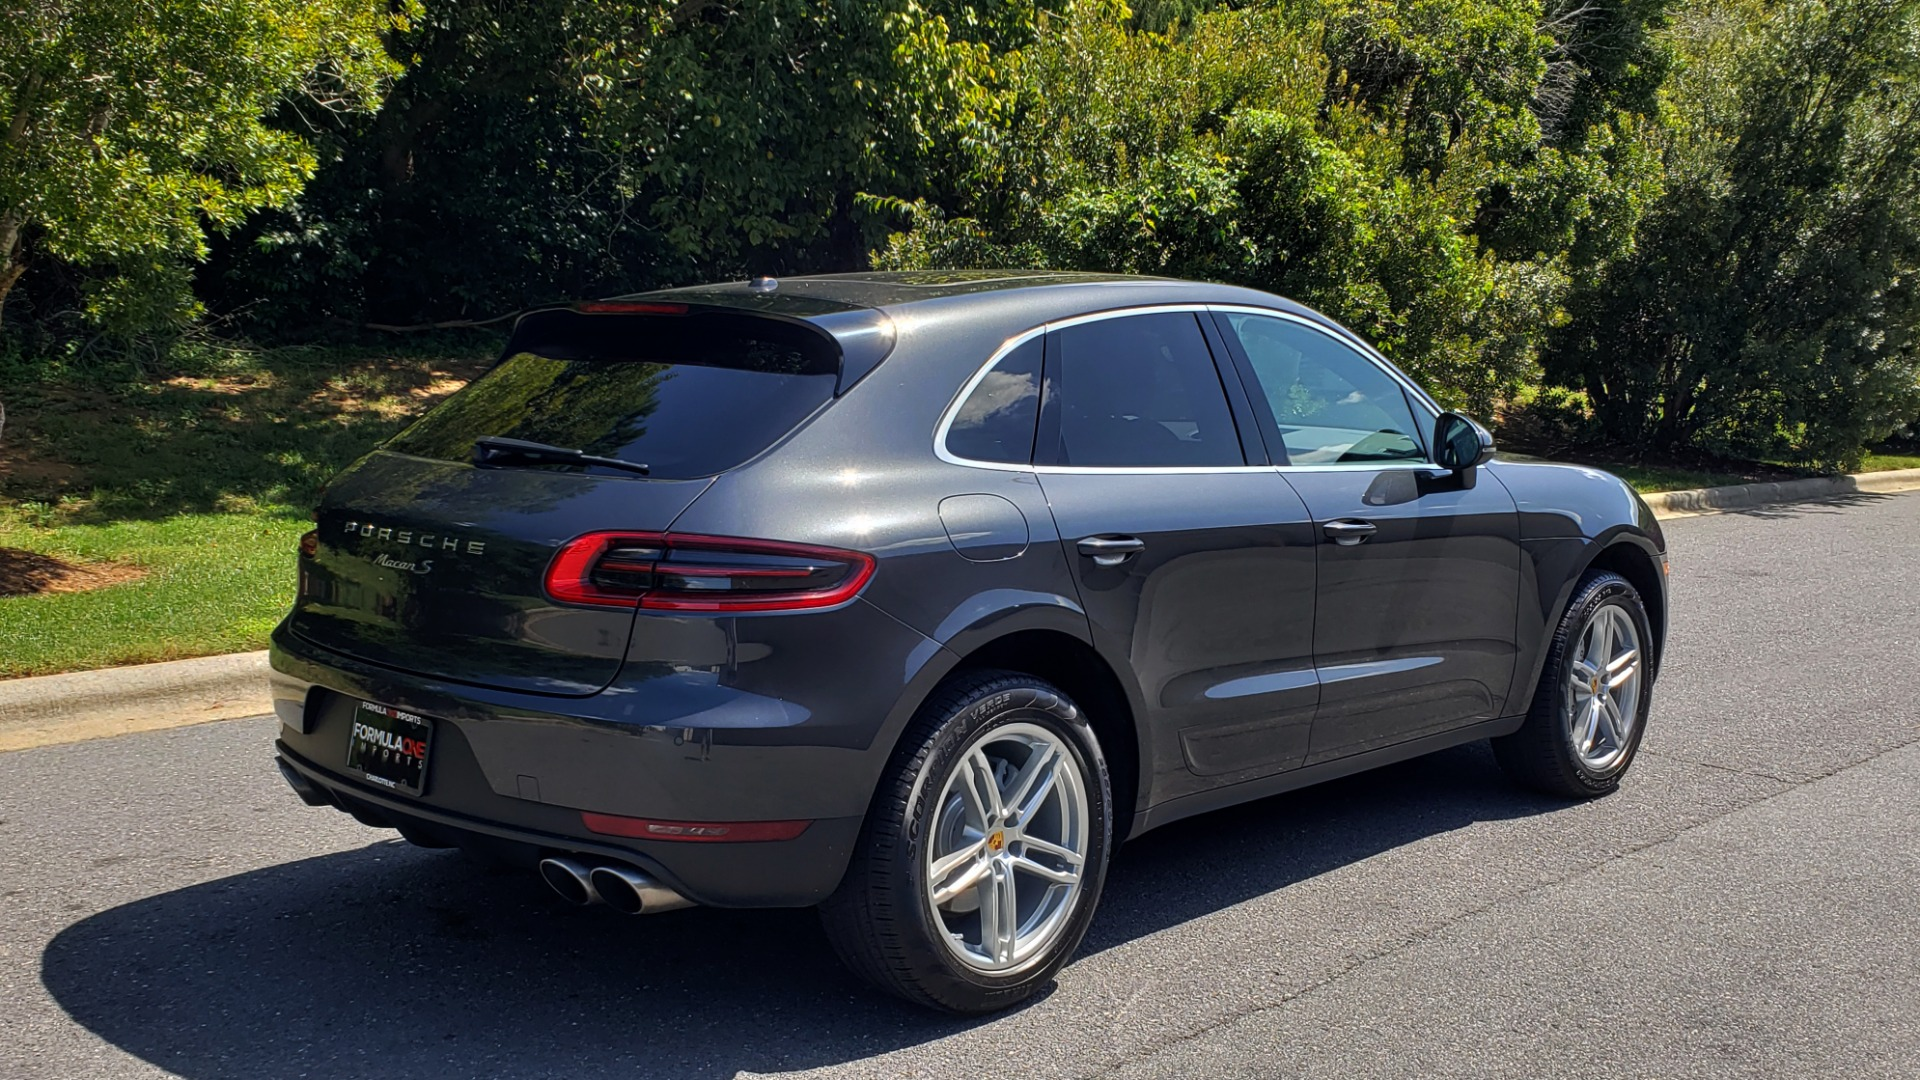 Used 2017 Porsche MACAN S PREMIUM PKG / NAV / BOSE / SUNROOF / REARVIEW for sale Sold at Formula Imports in Charlotte NC 28227 9